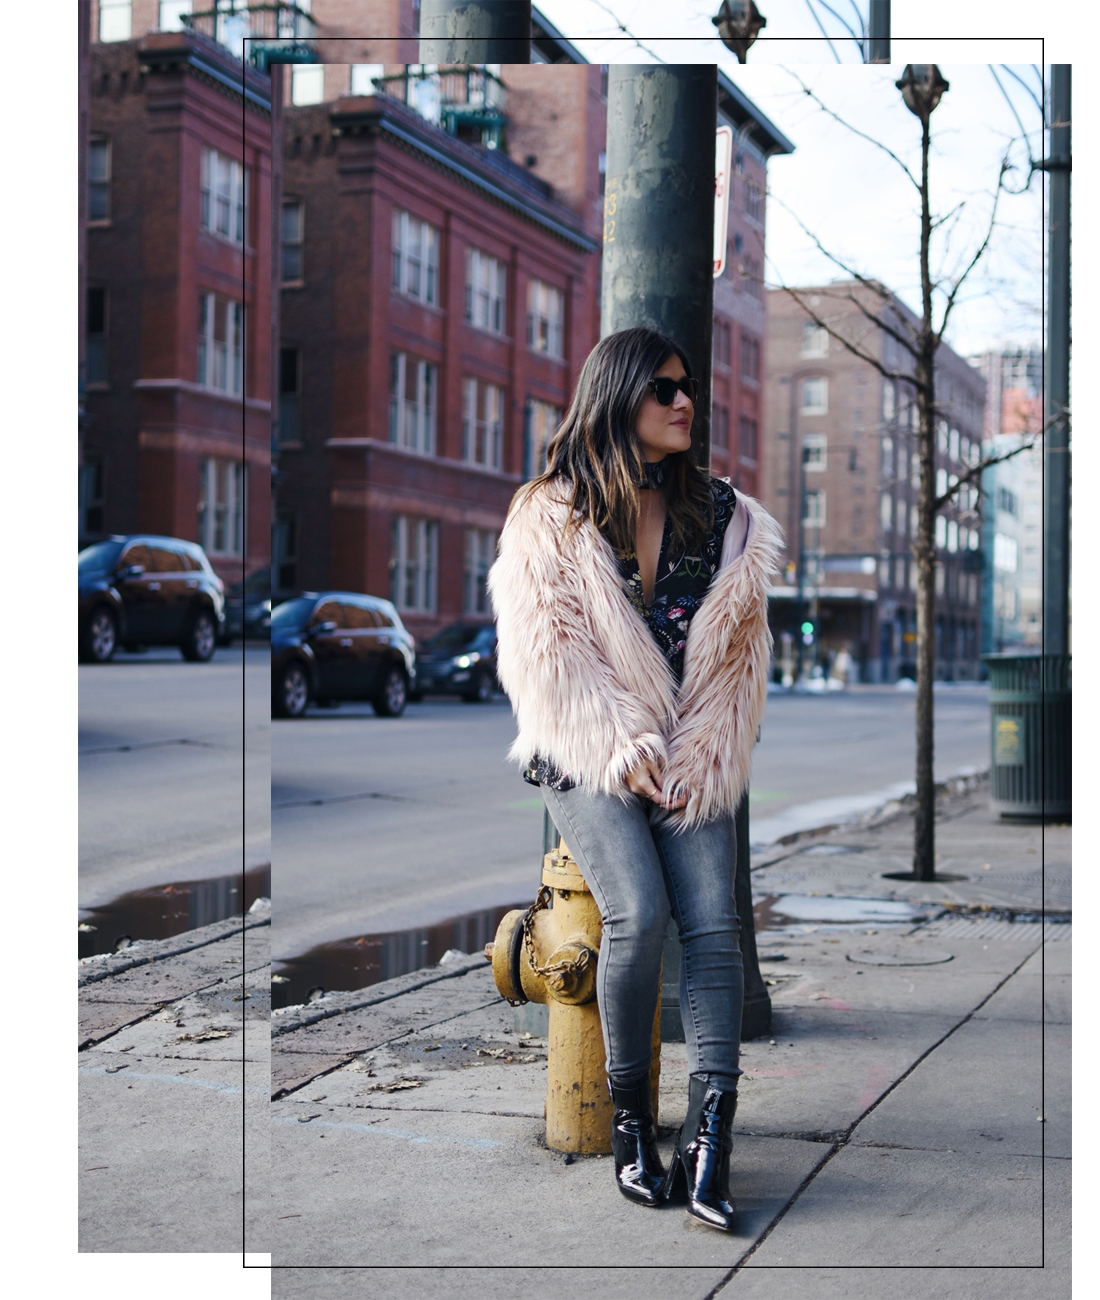 Carolina Hellal of Chic Talk wearing a floral chiffon top, a furry coat and Madewell jeans.